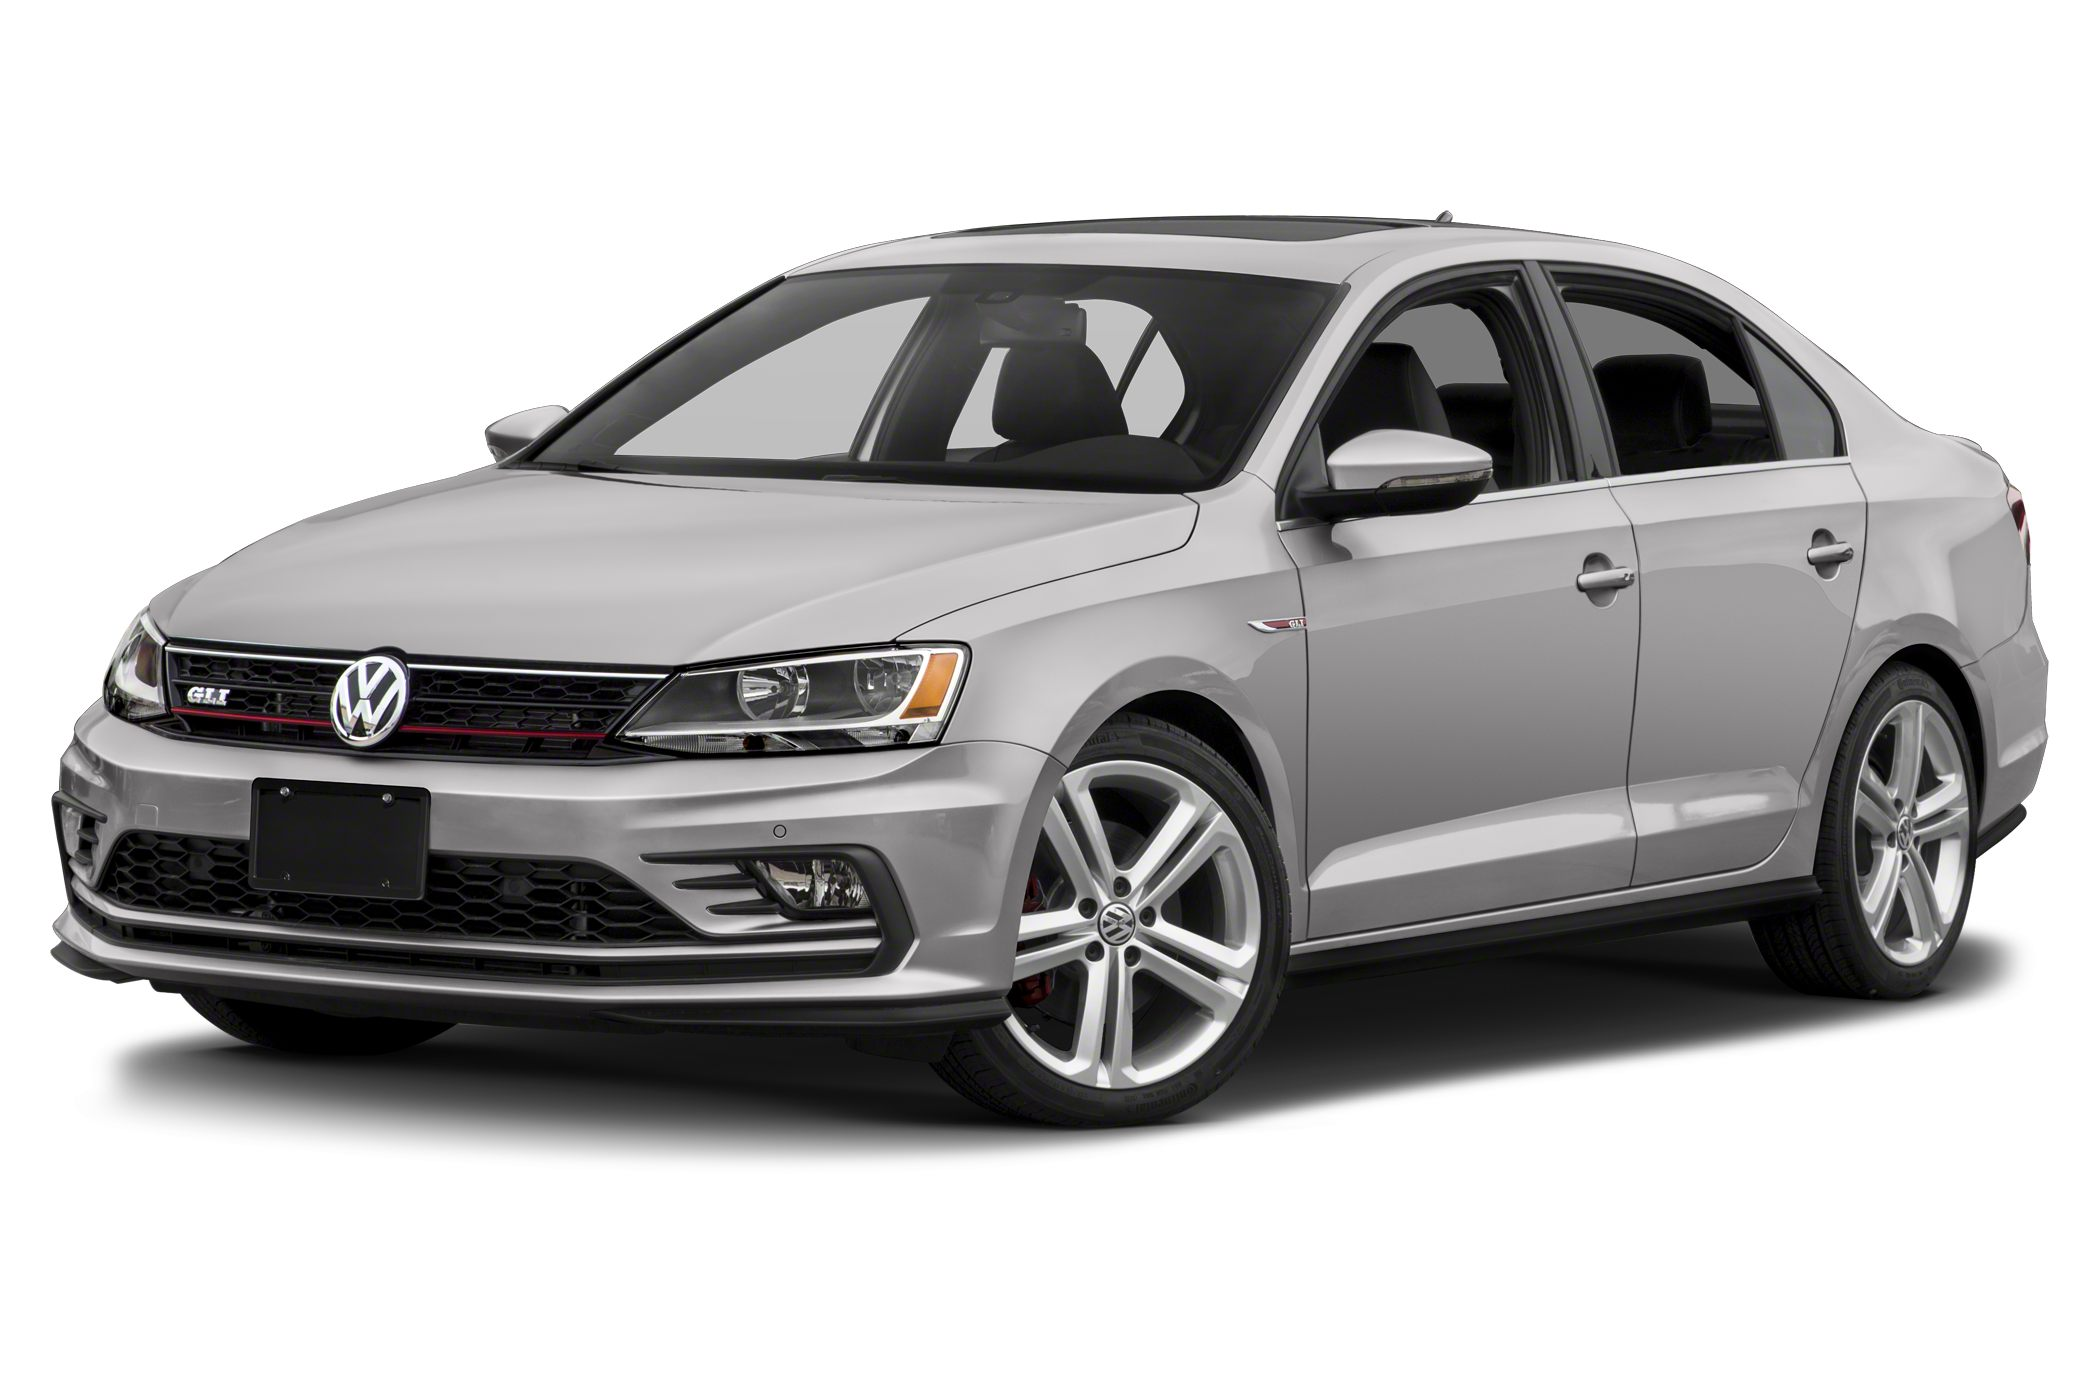 2017 Volkswagen Jetta Specs, Pictures, Trims, Colors || Cars.com